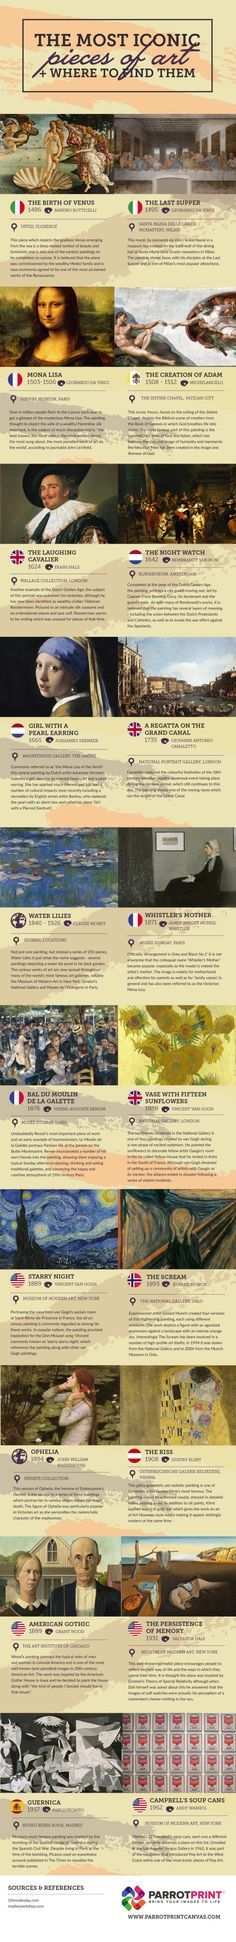 The Most Iconic Pieces of Art And Where To Find Them #Infographic